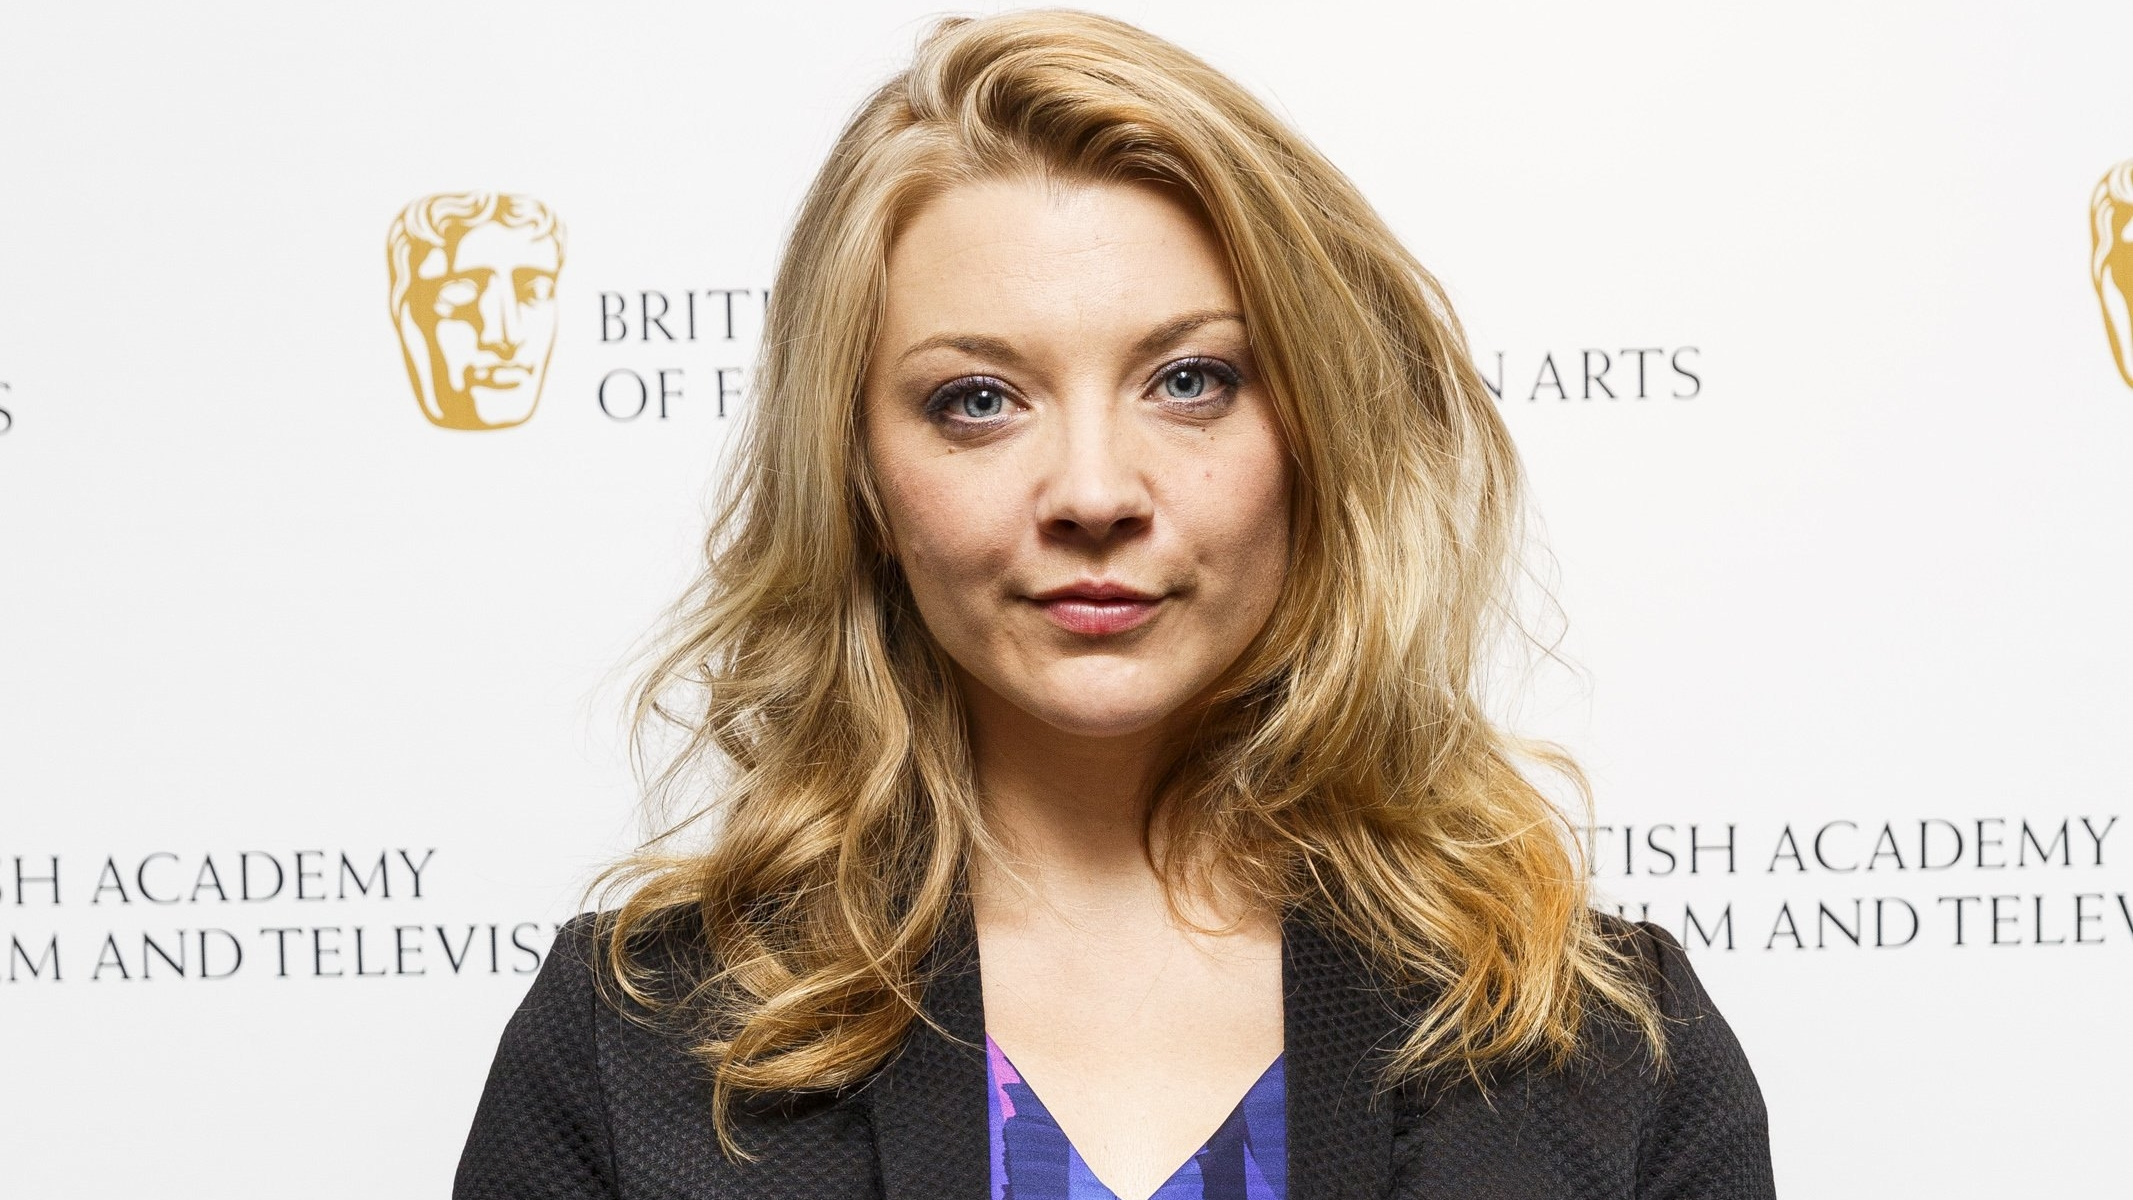 natalie dormer wallpapers pictures images